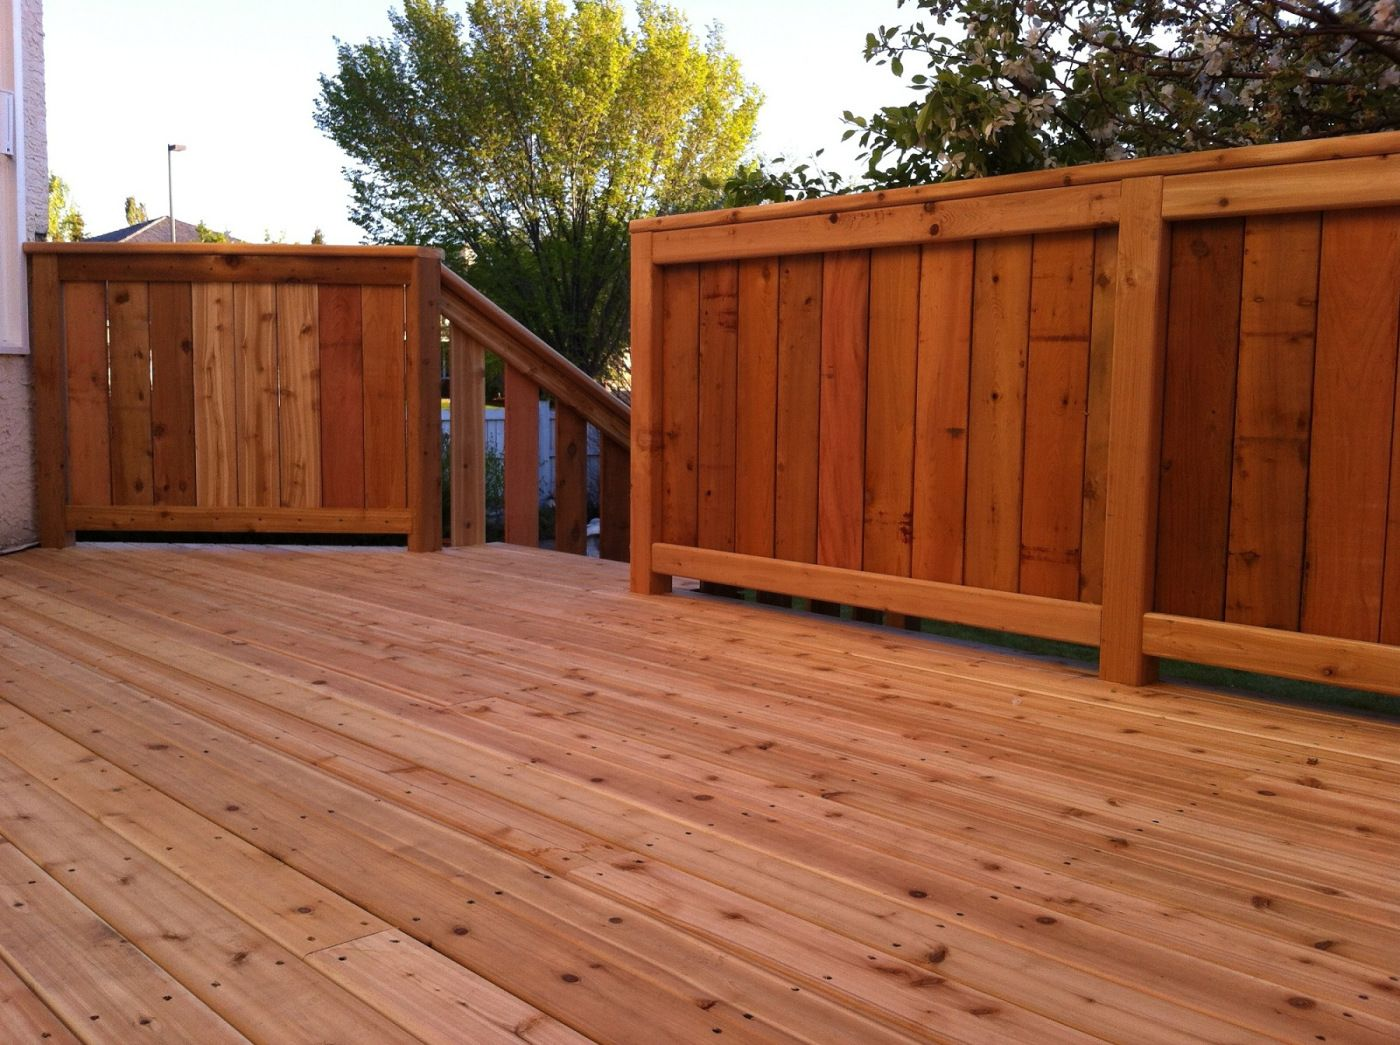 cedar deck with fenced railing pictures of decks fencing and tub